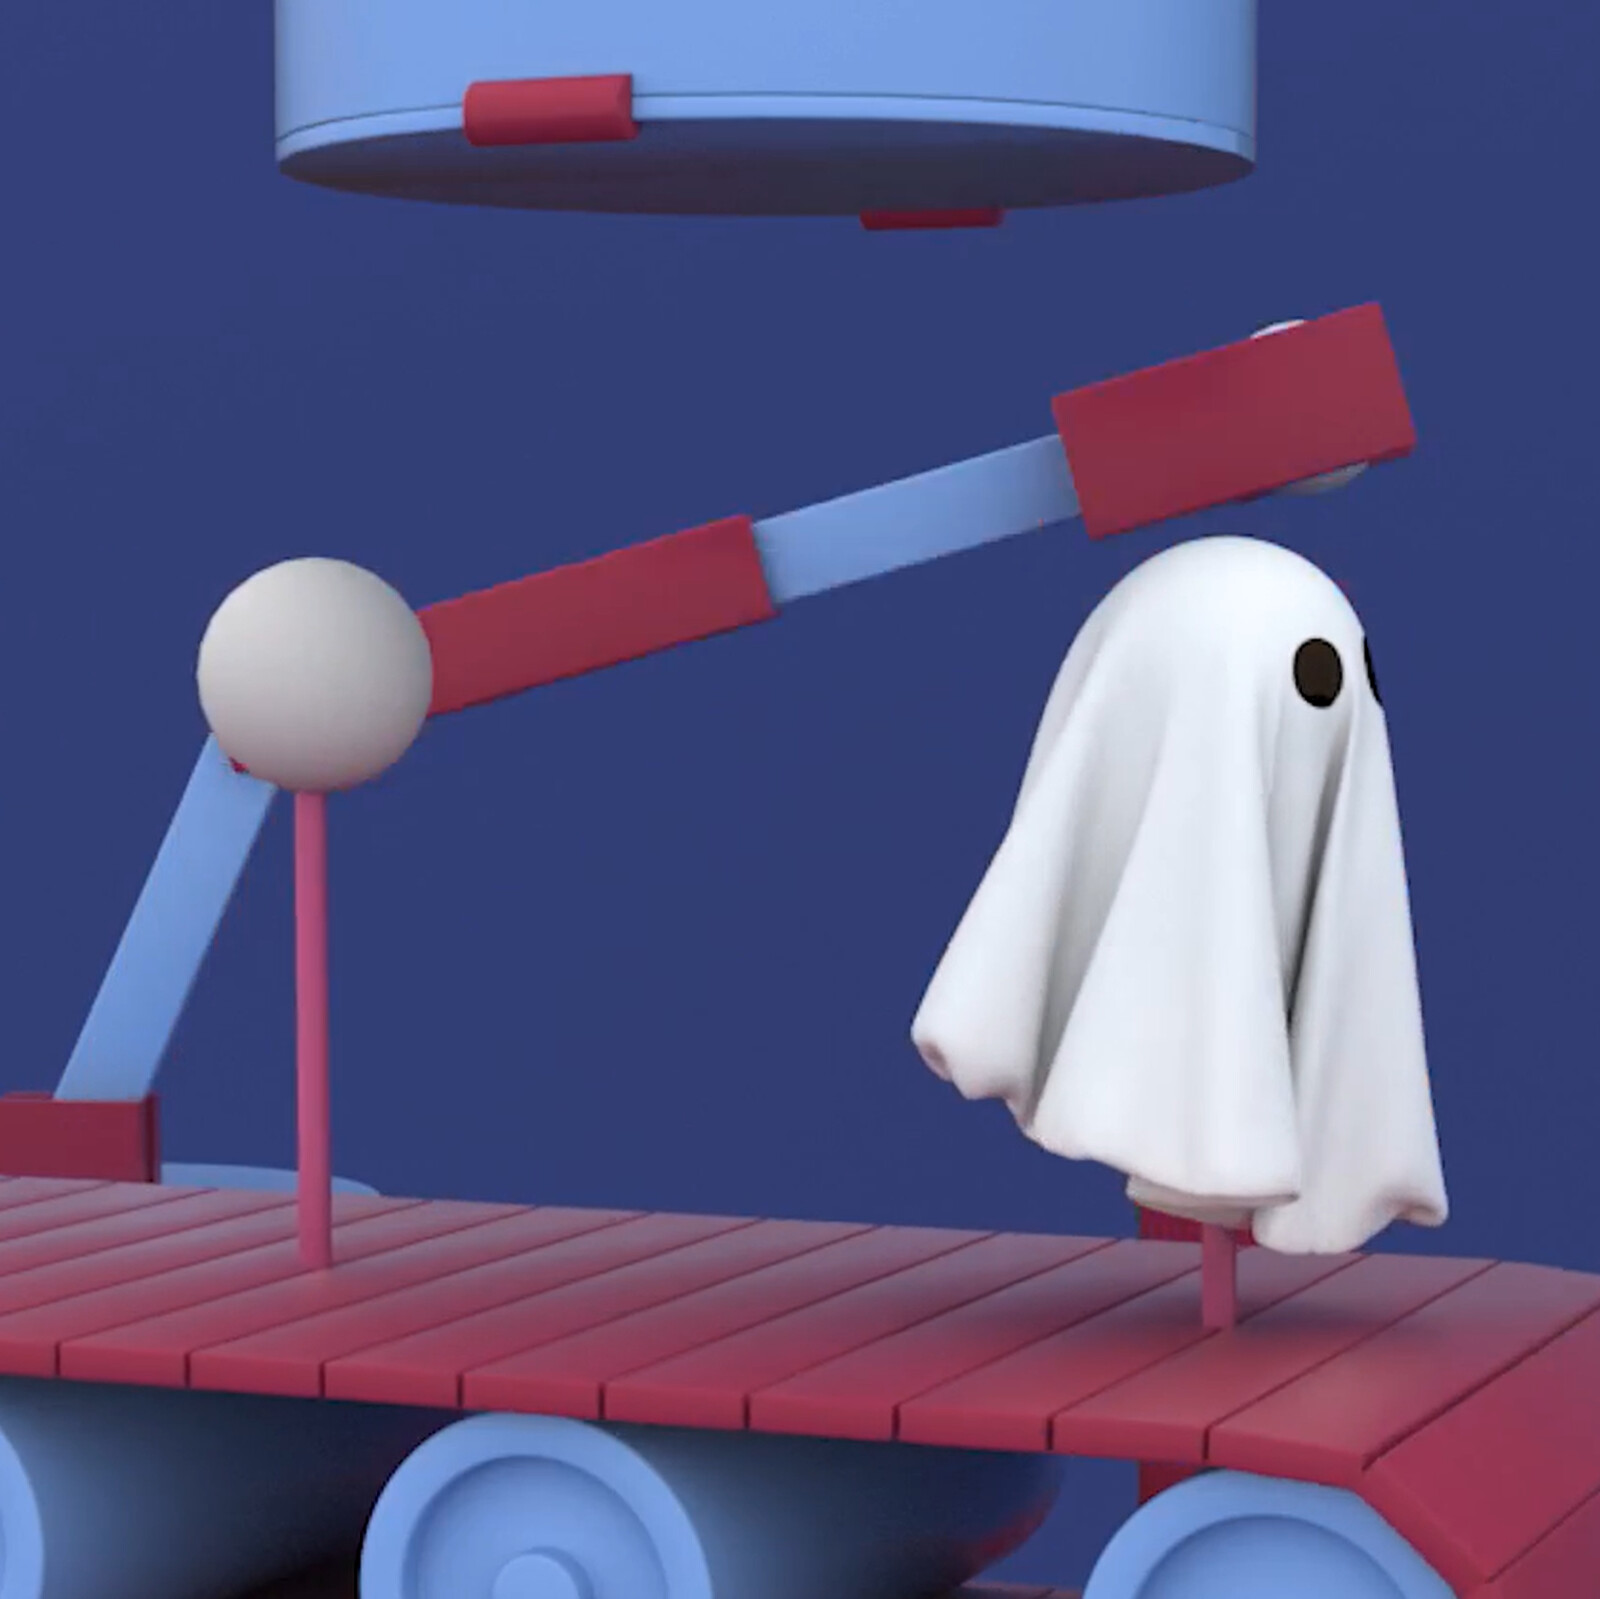 Ghost Assembly Line